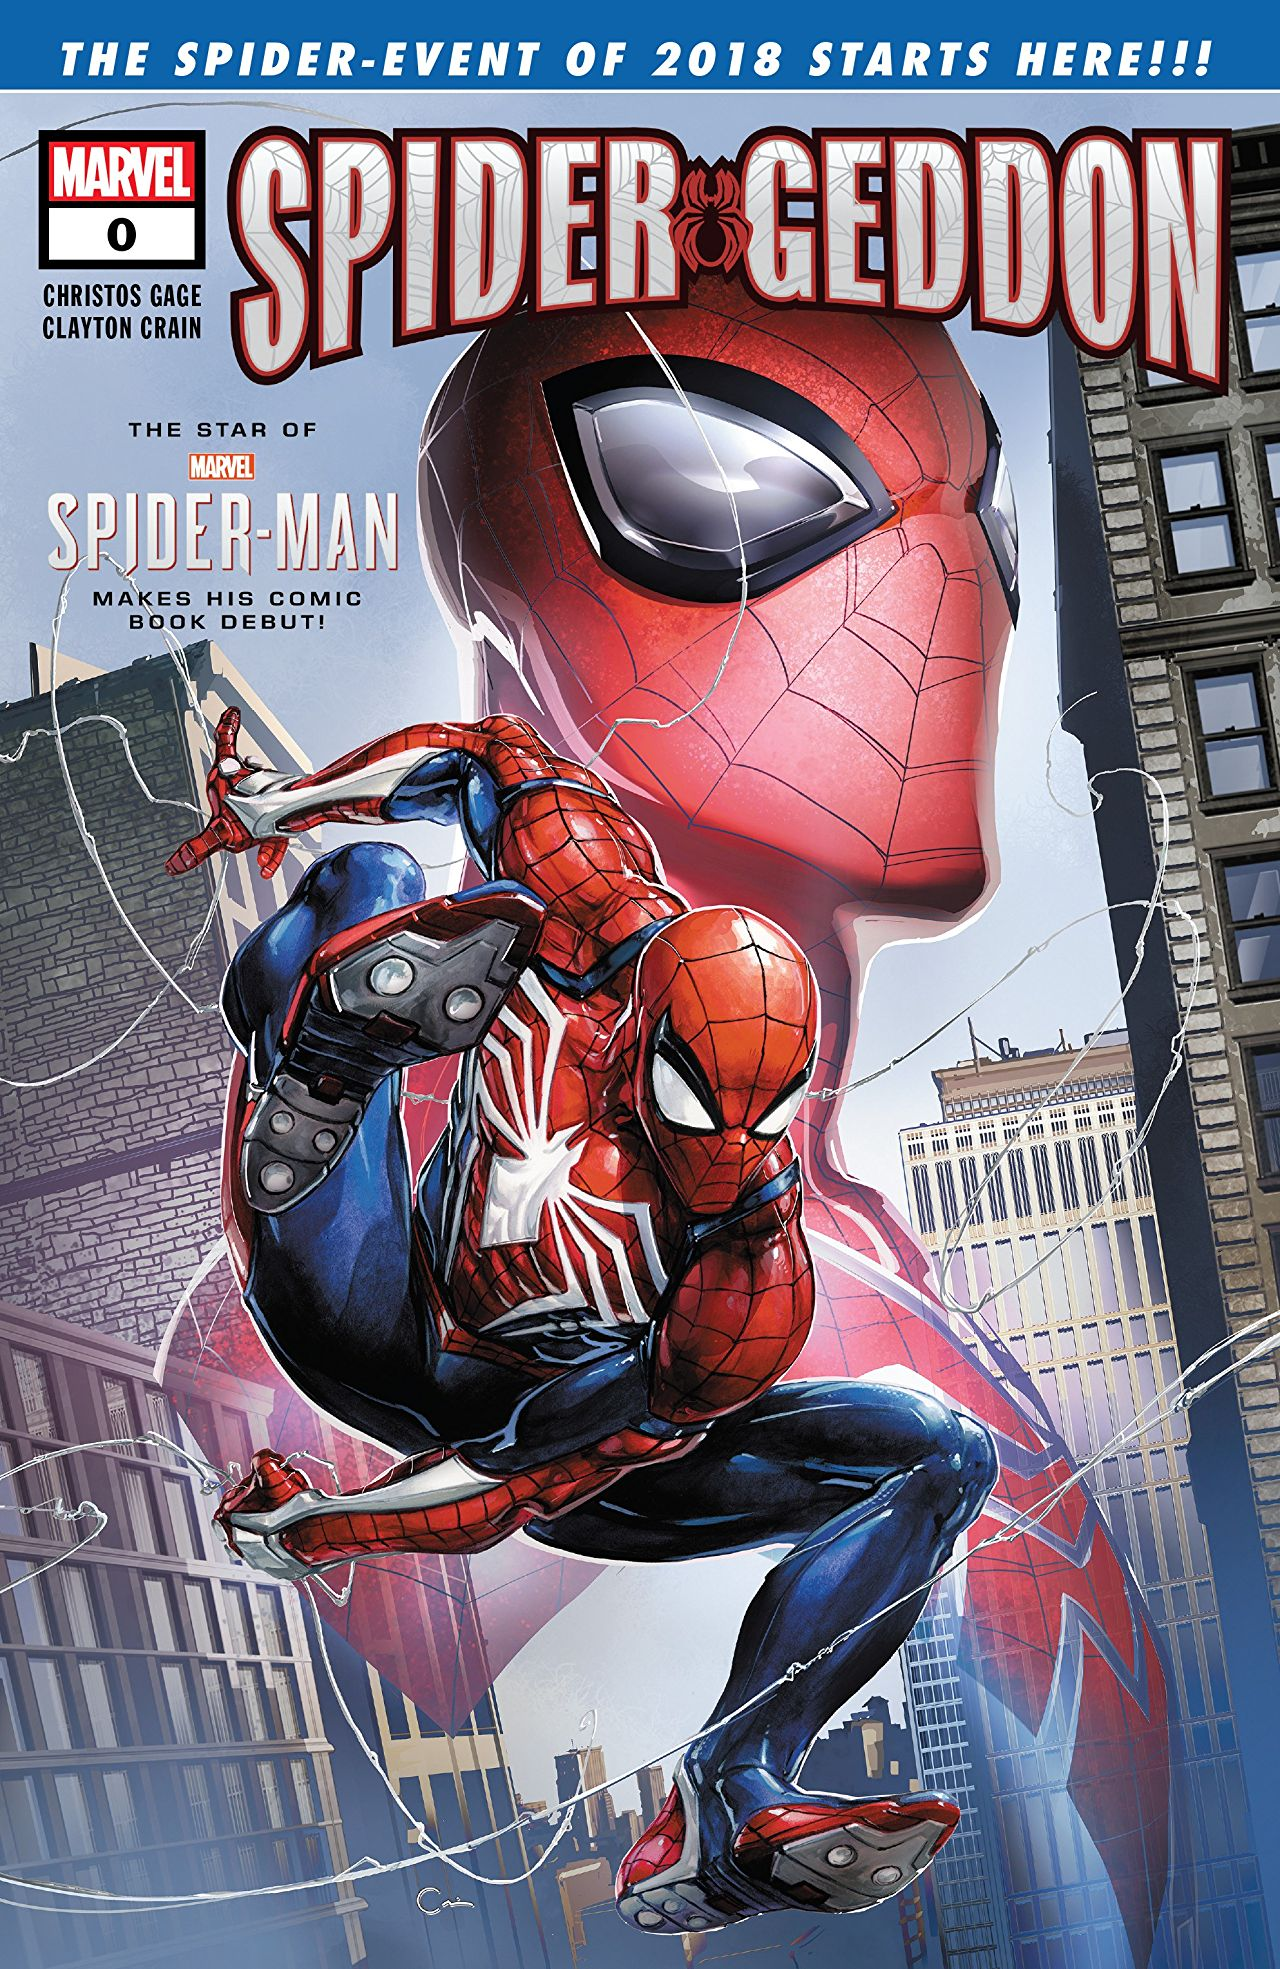 Spider Geddon Vol 1 0 Marvel Database Fandom Powered By Wikia